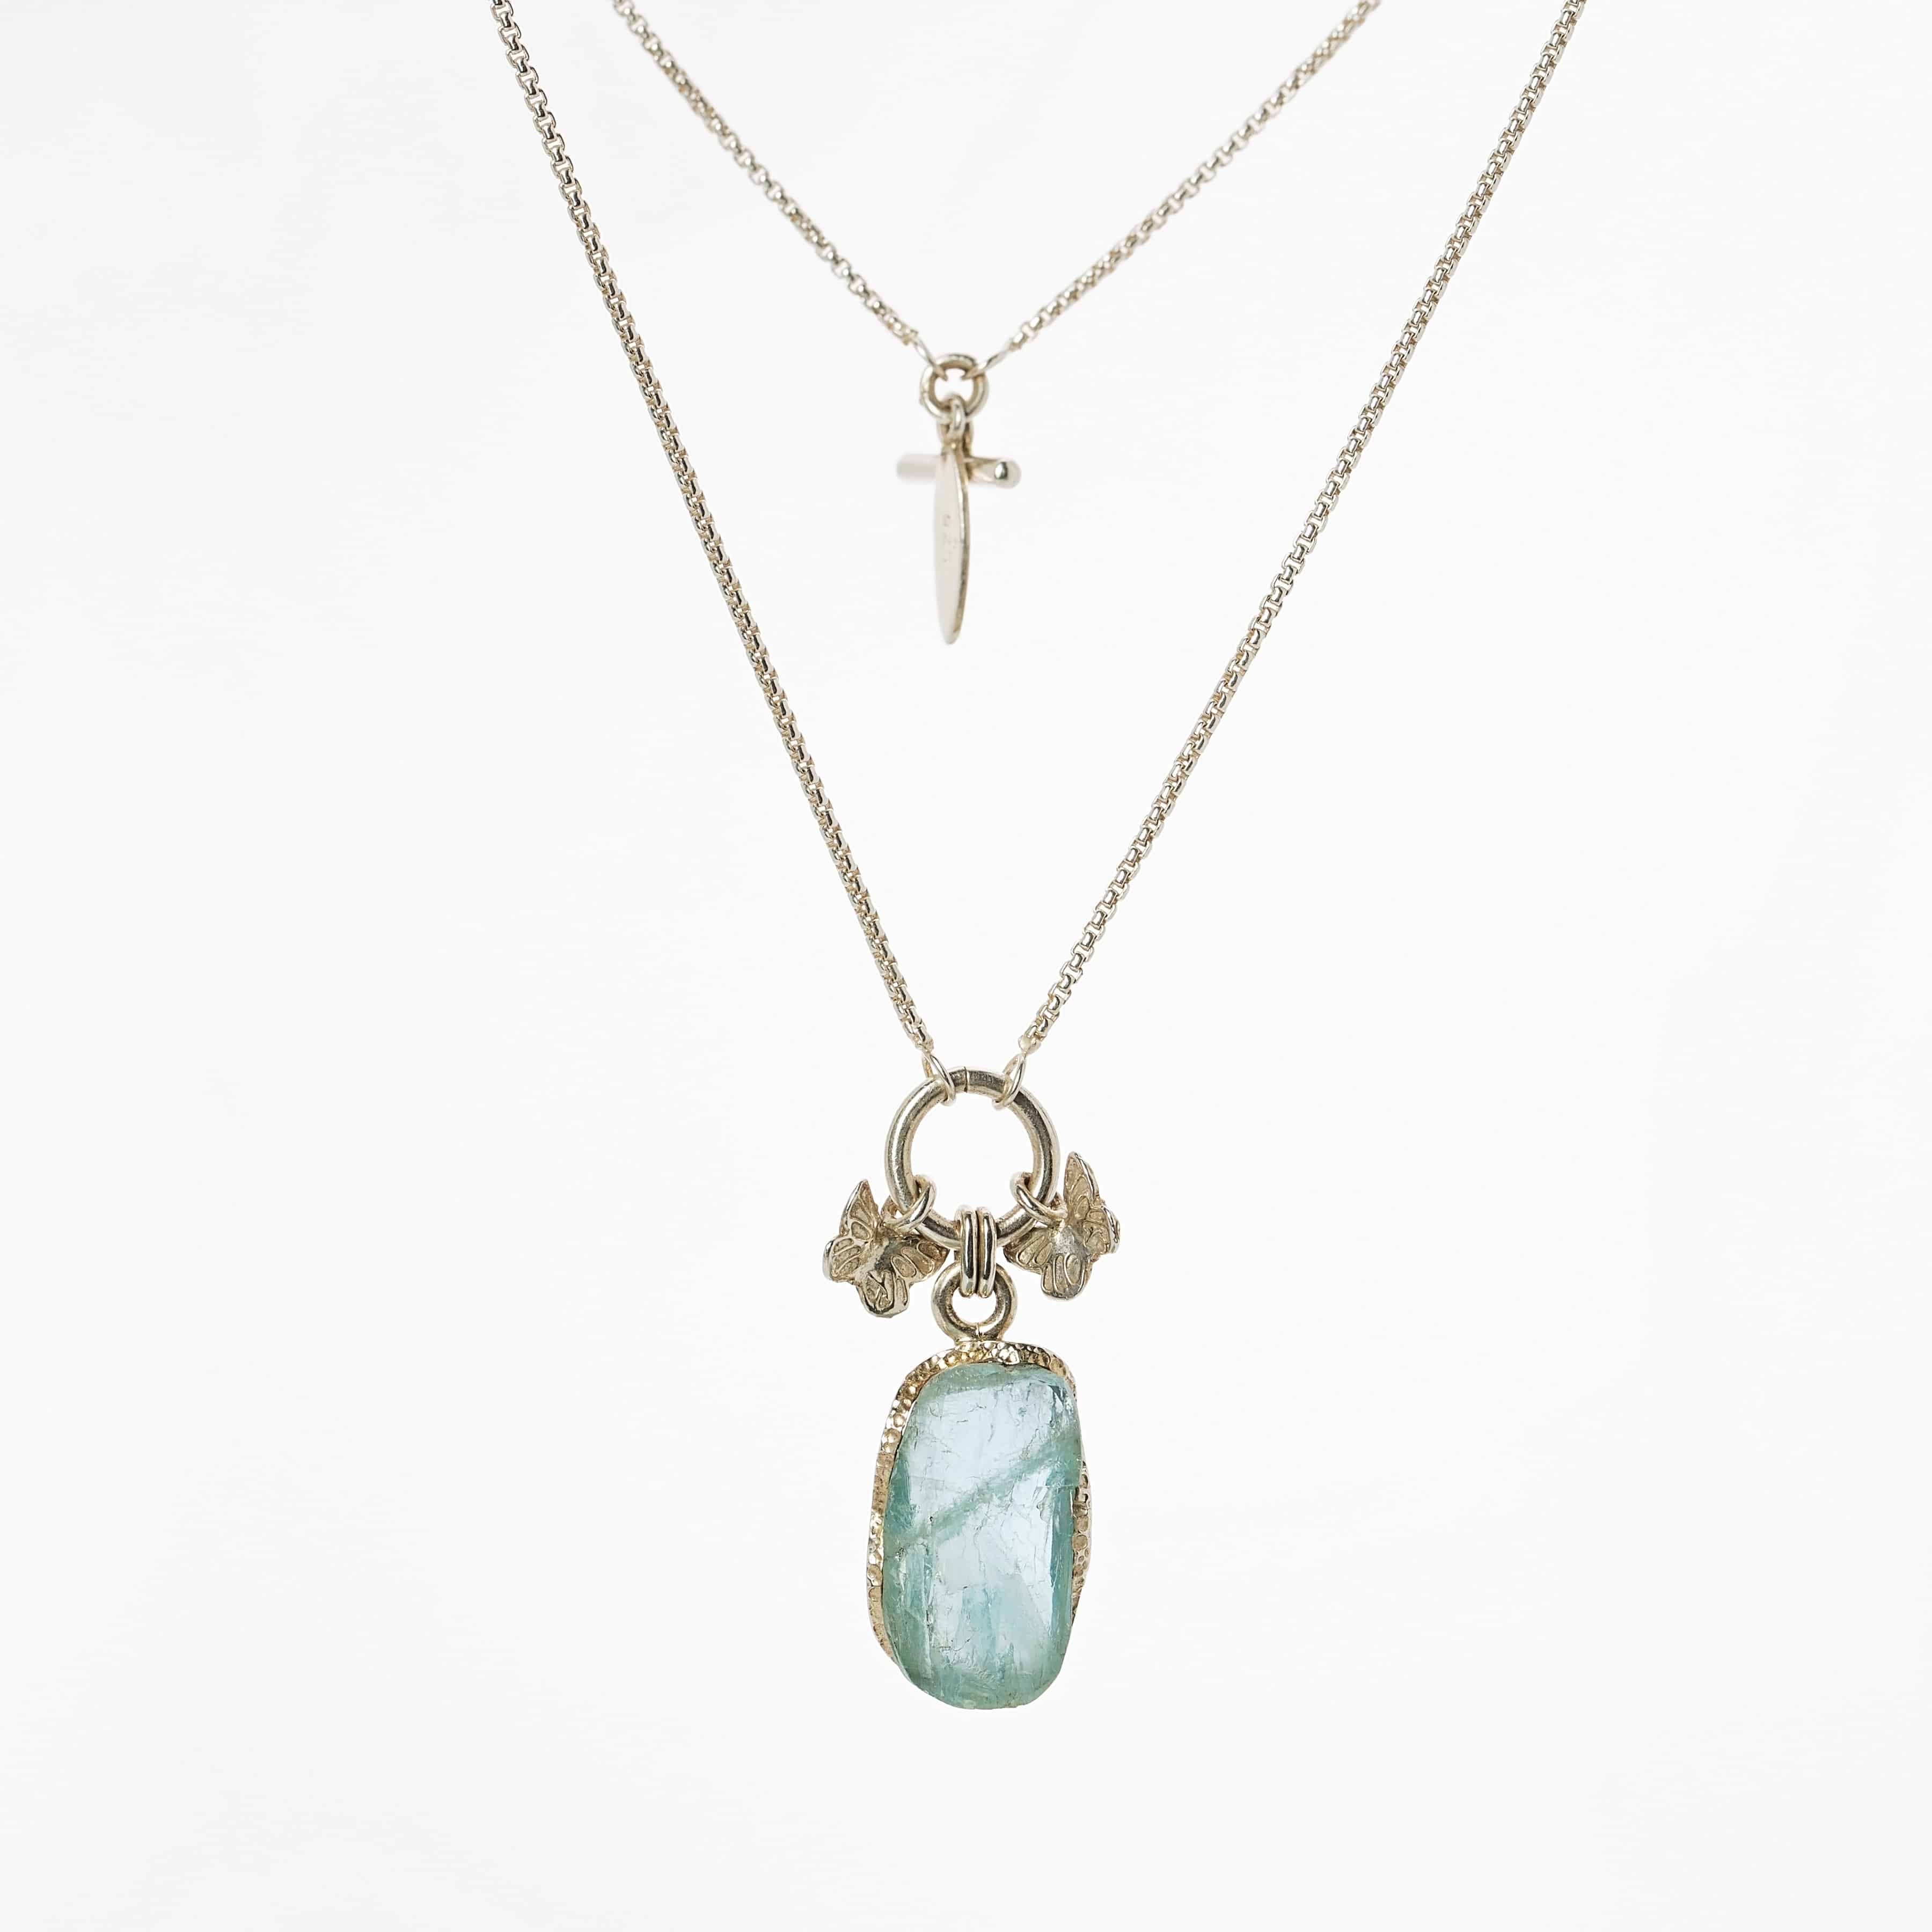 Aquamarine Raw butterfly 2in1 chain necklace, necklace,handmade